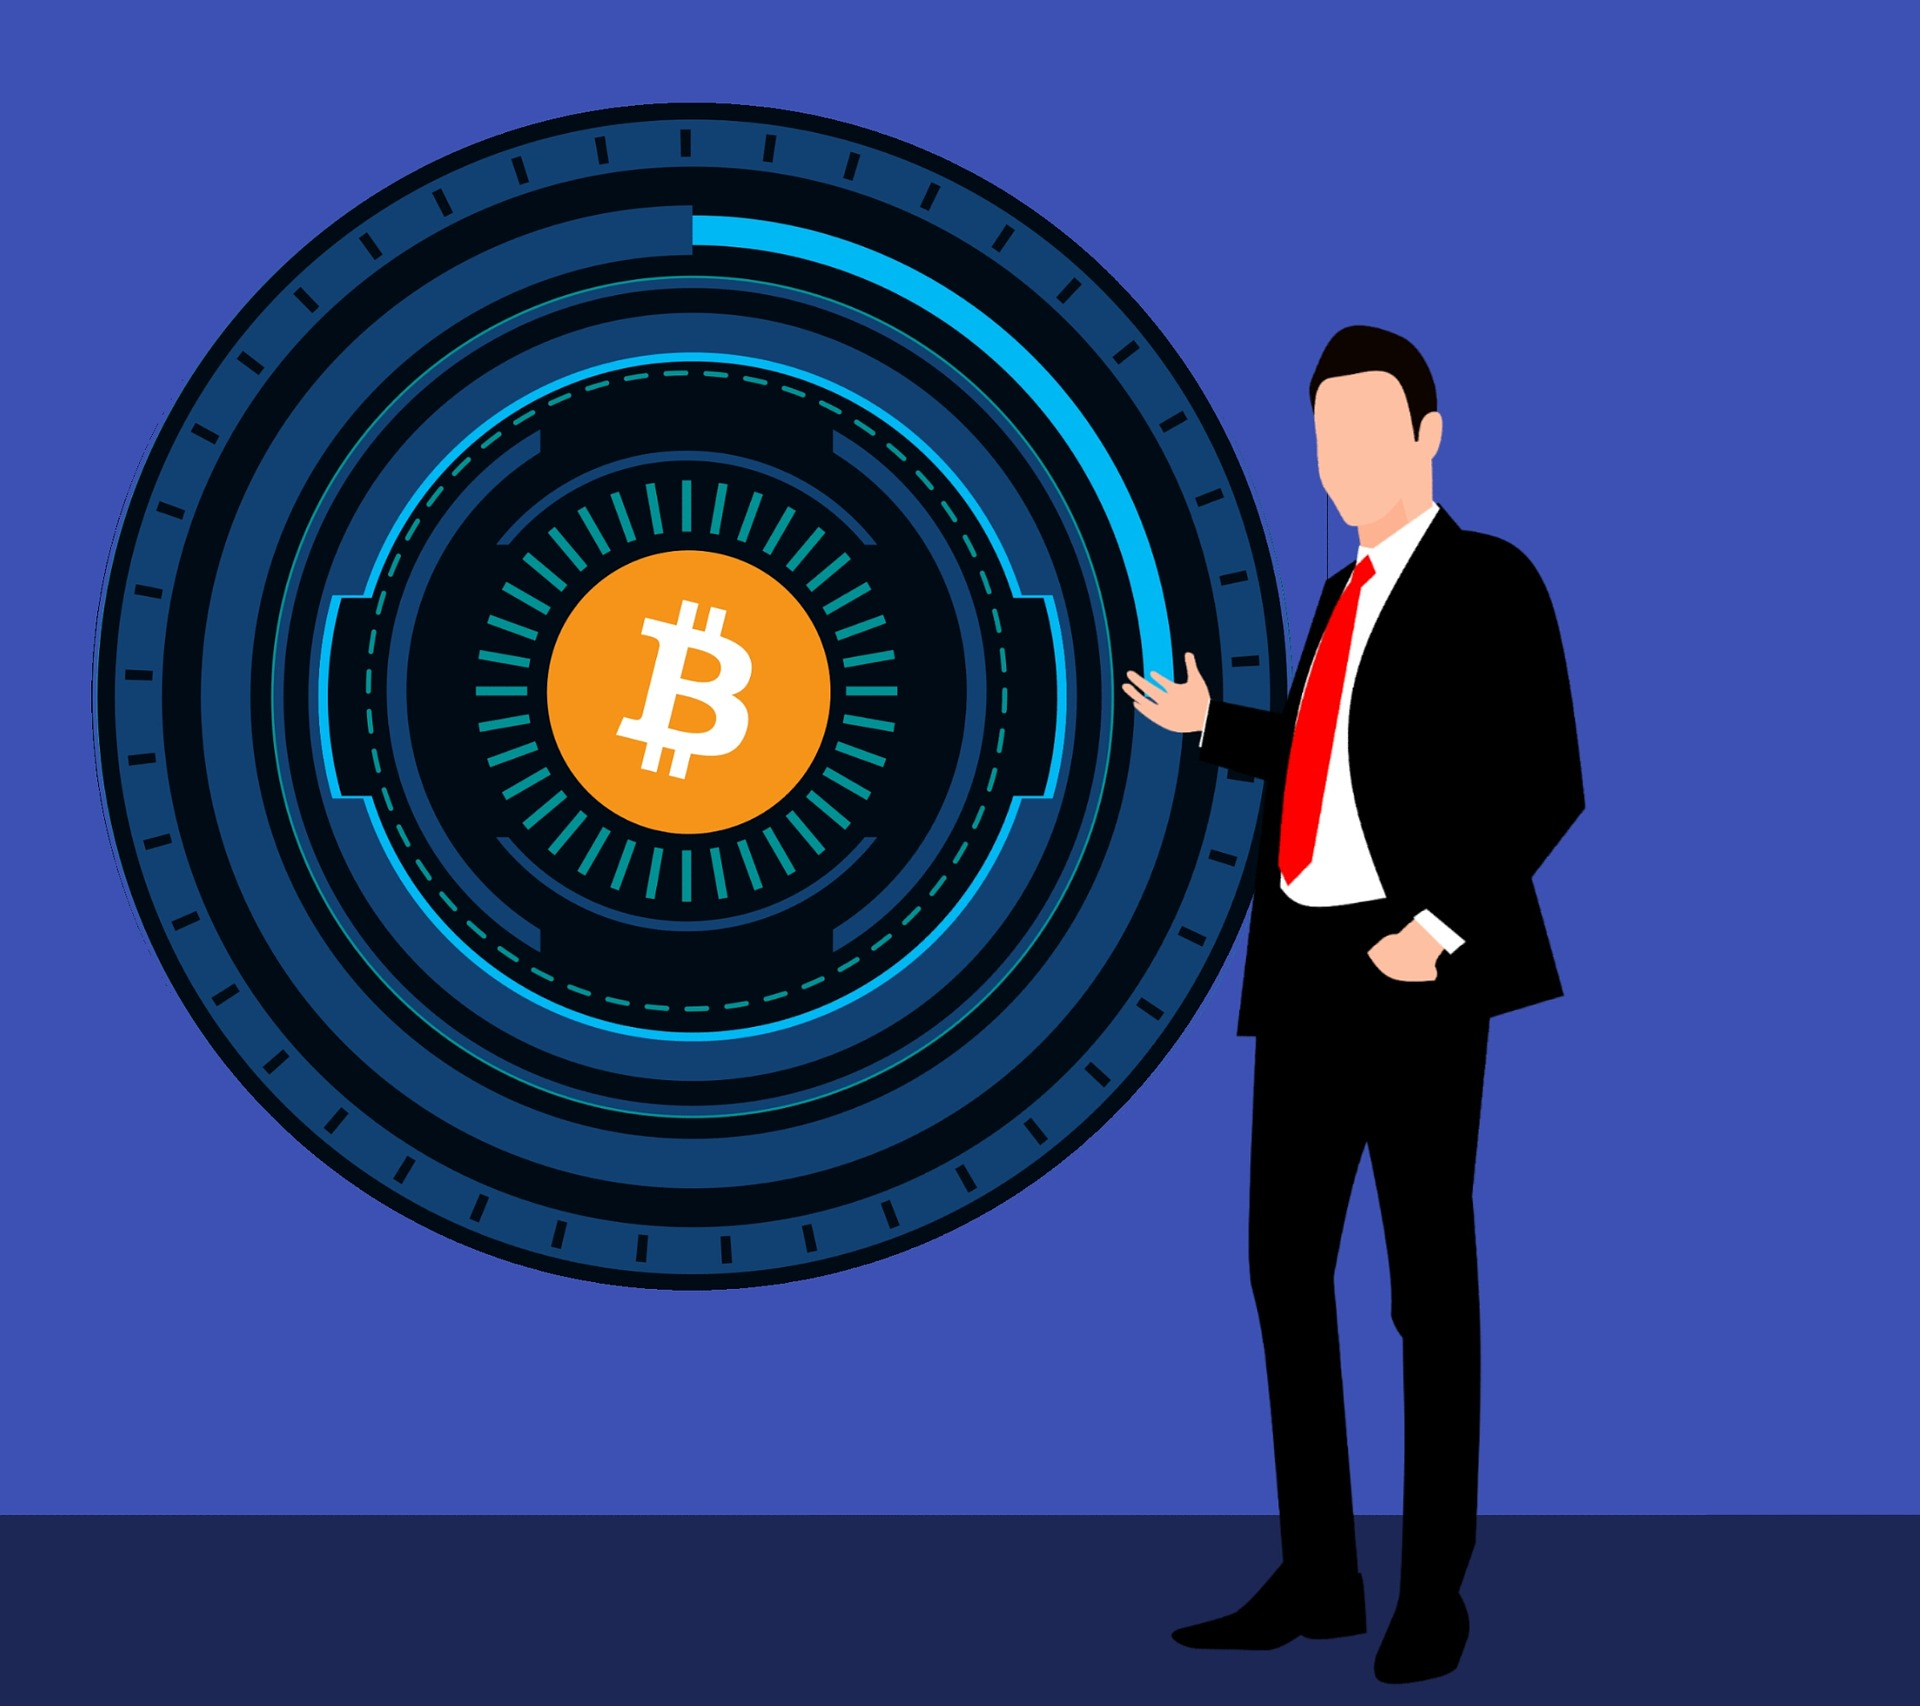 The Chief Executive Officer of Twitter calls on Nigerians to accept BTC